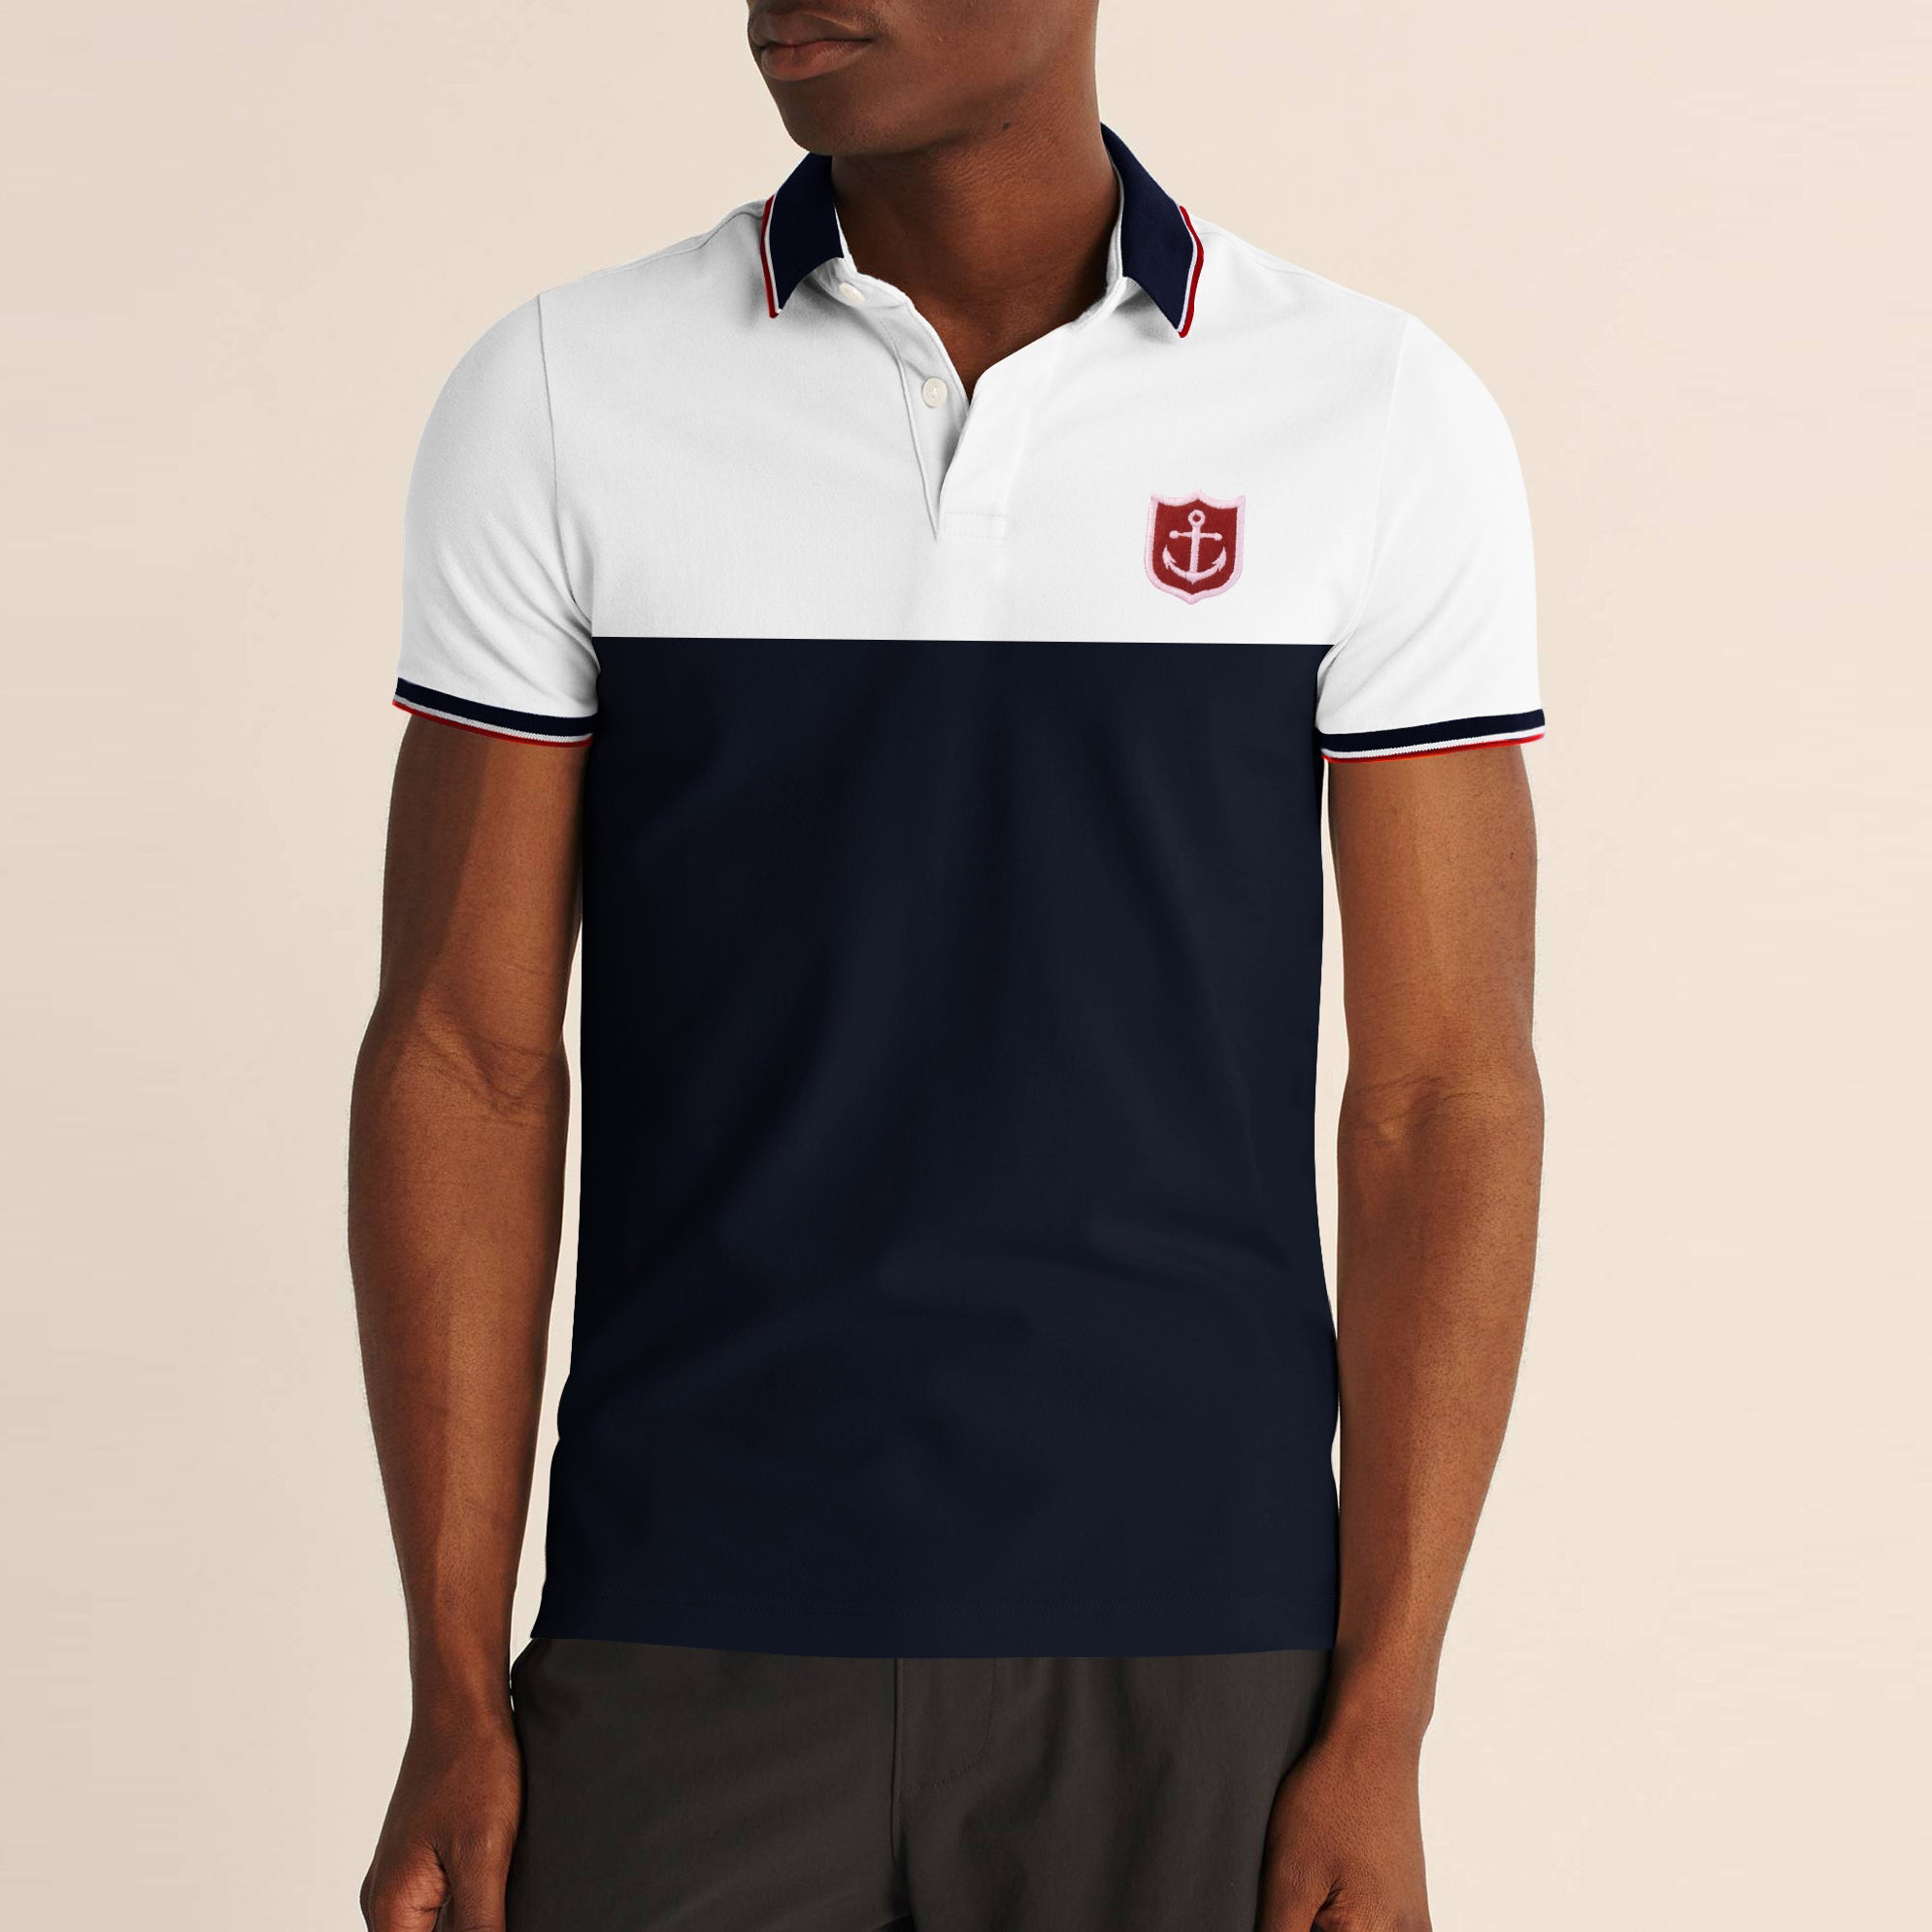 Express Stylish Summer Polo Shirt For Men-White with Navy Panel-BE11458